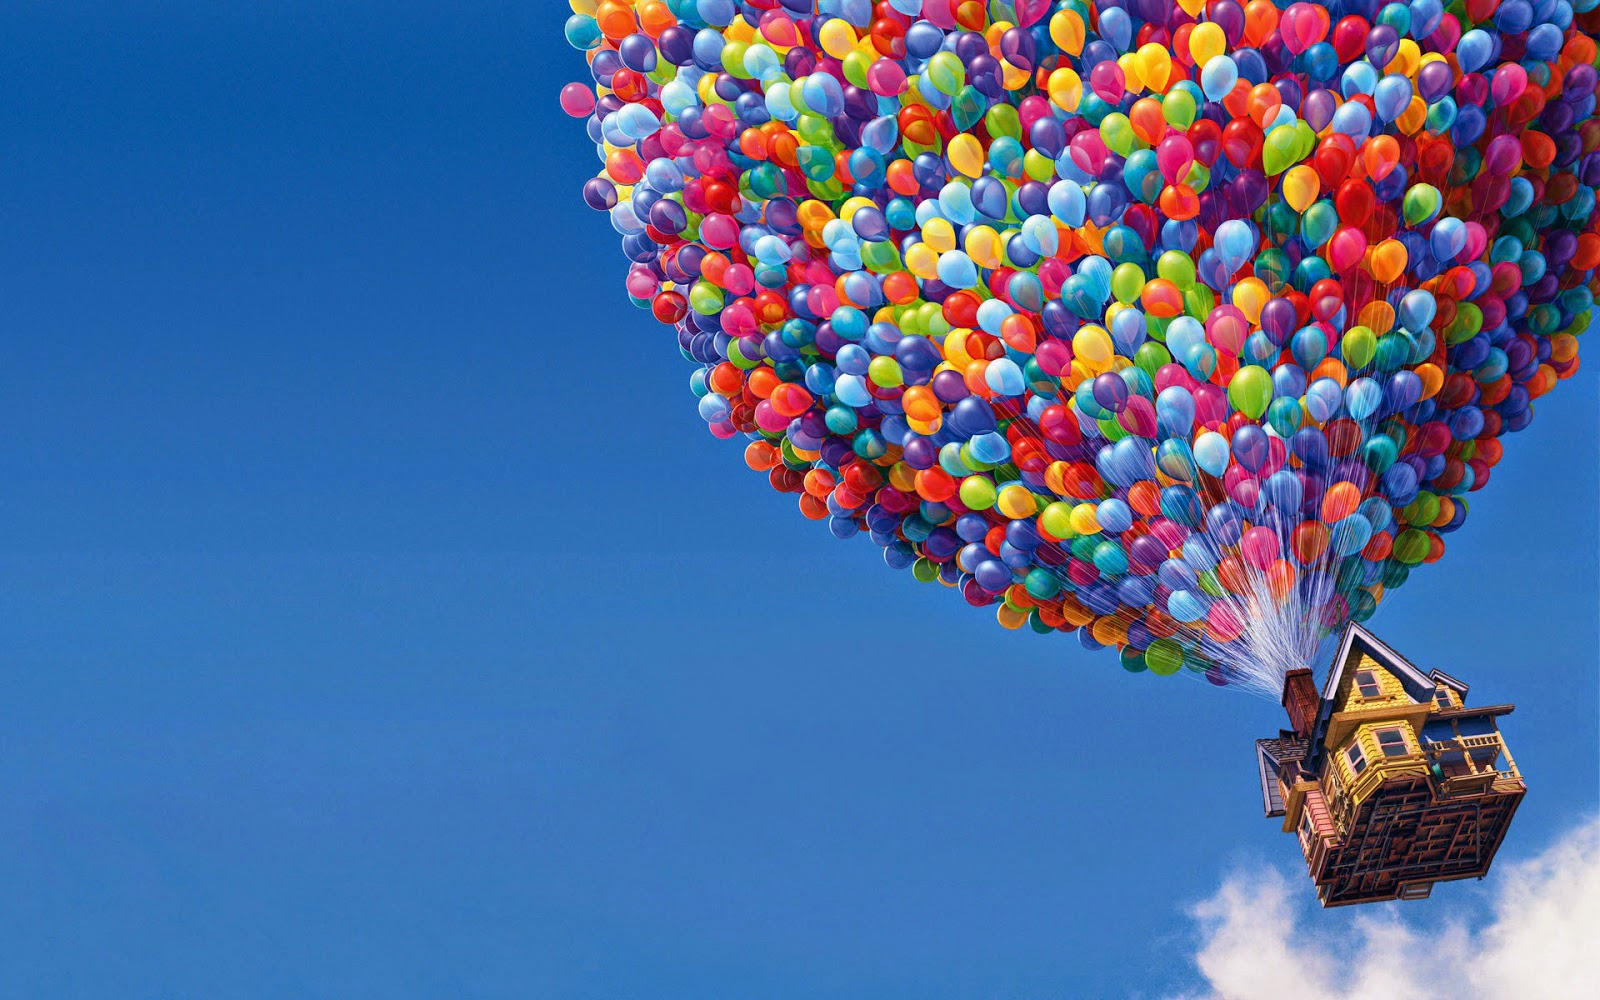 Carl flies away with helium balloons attached to his house in Up! (2009)